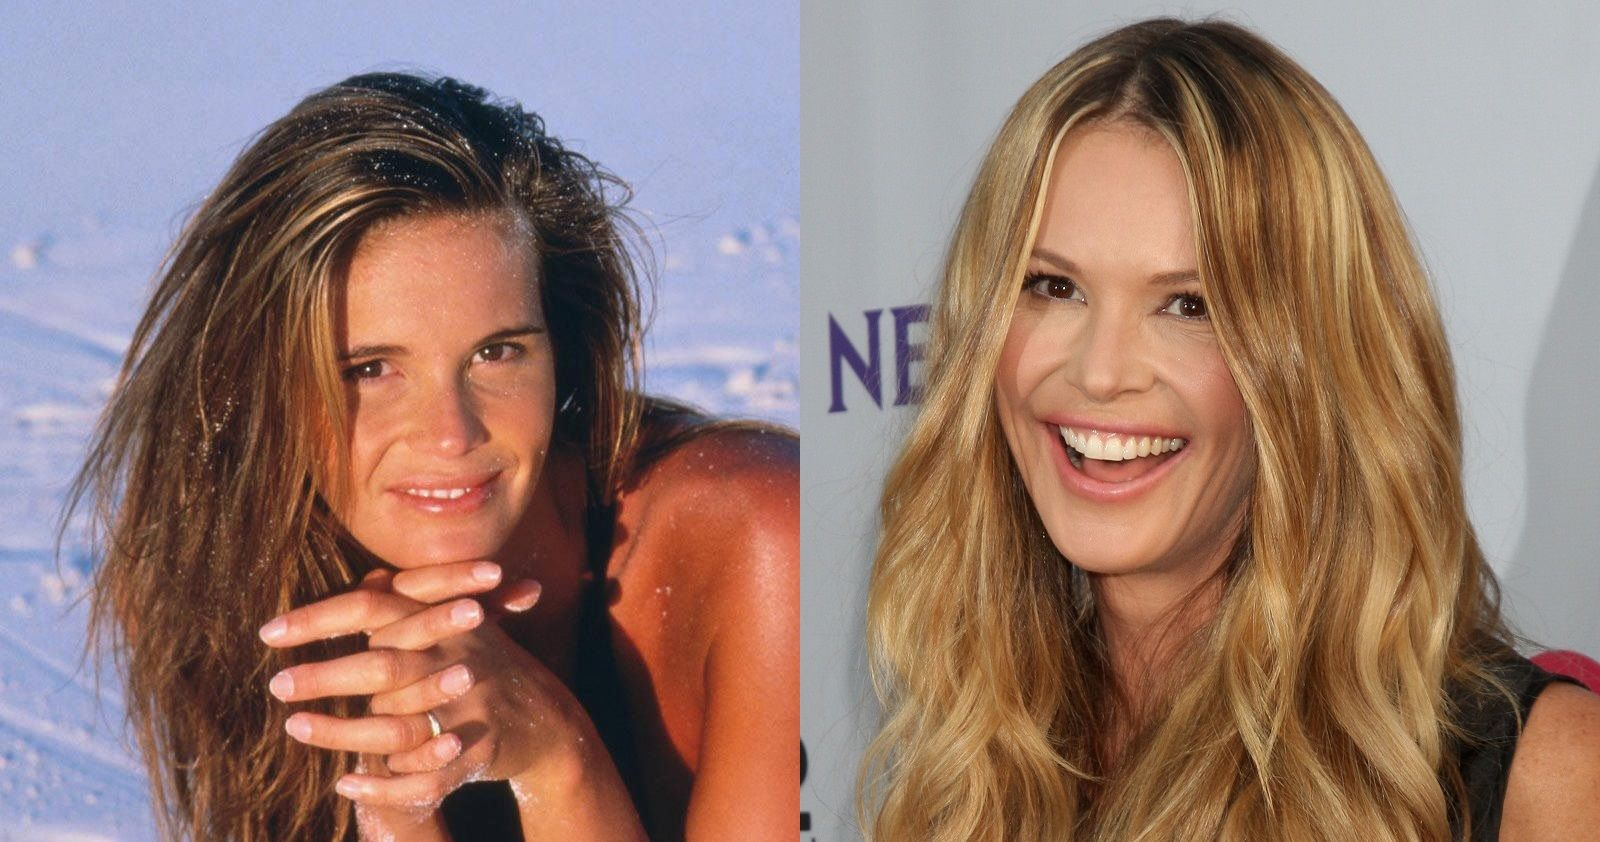 20 'Where Are They Now' Stories About Retired Models